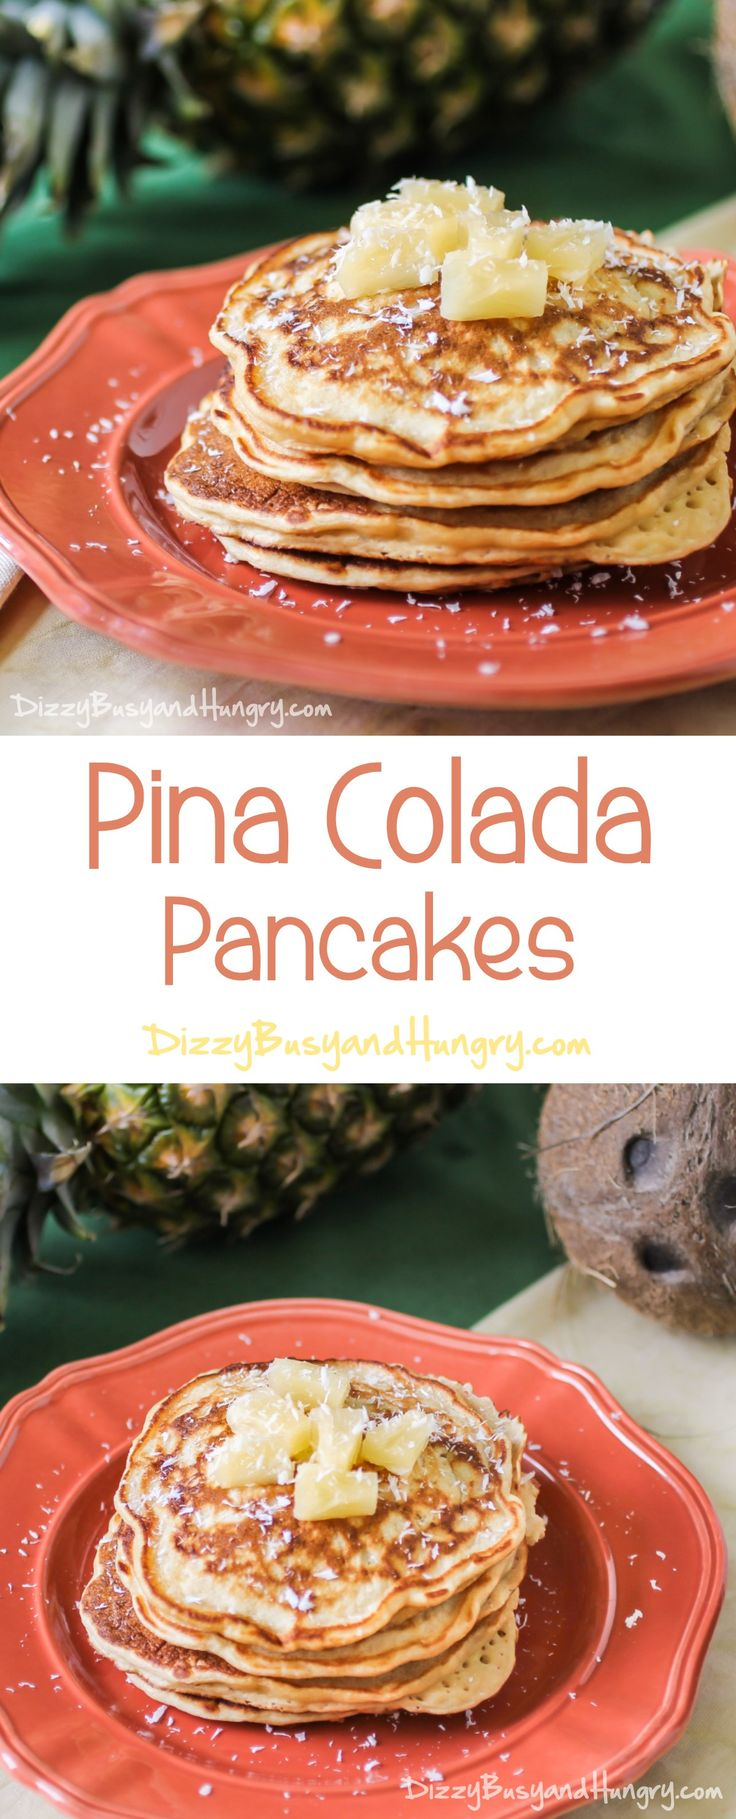 Pina Colada Pancakes #SundaySupper  Fluffy, melt-in-your-mouth pineapple pancakes drizzled with a deliciously sweet coconut syrup! http://www.dizzybusyandhungry.com/pina-colada-pancakes/